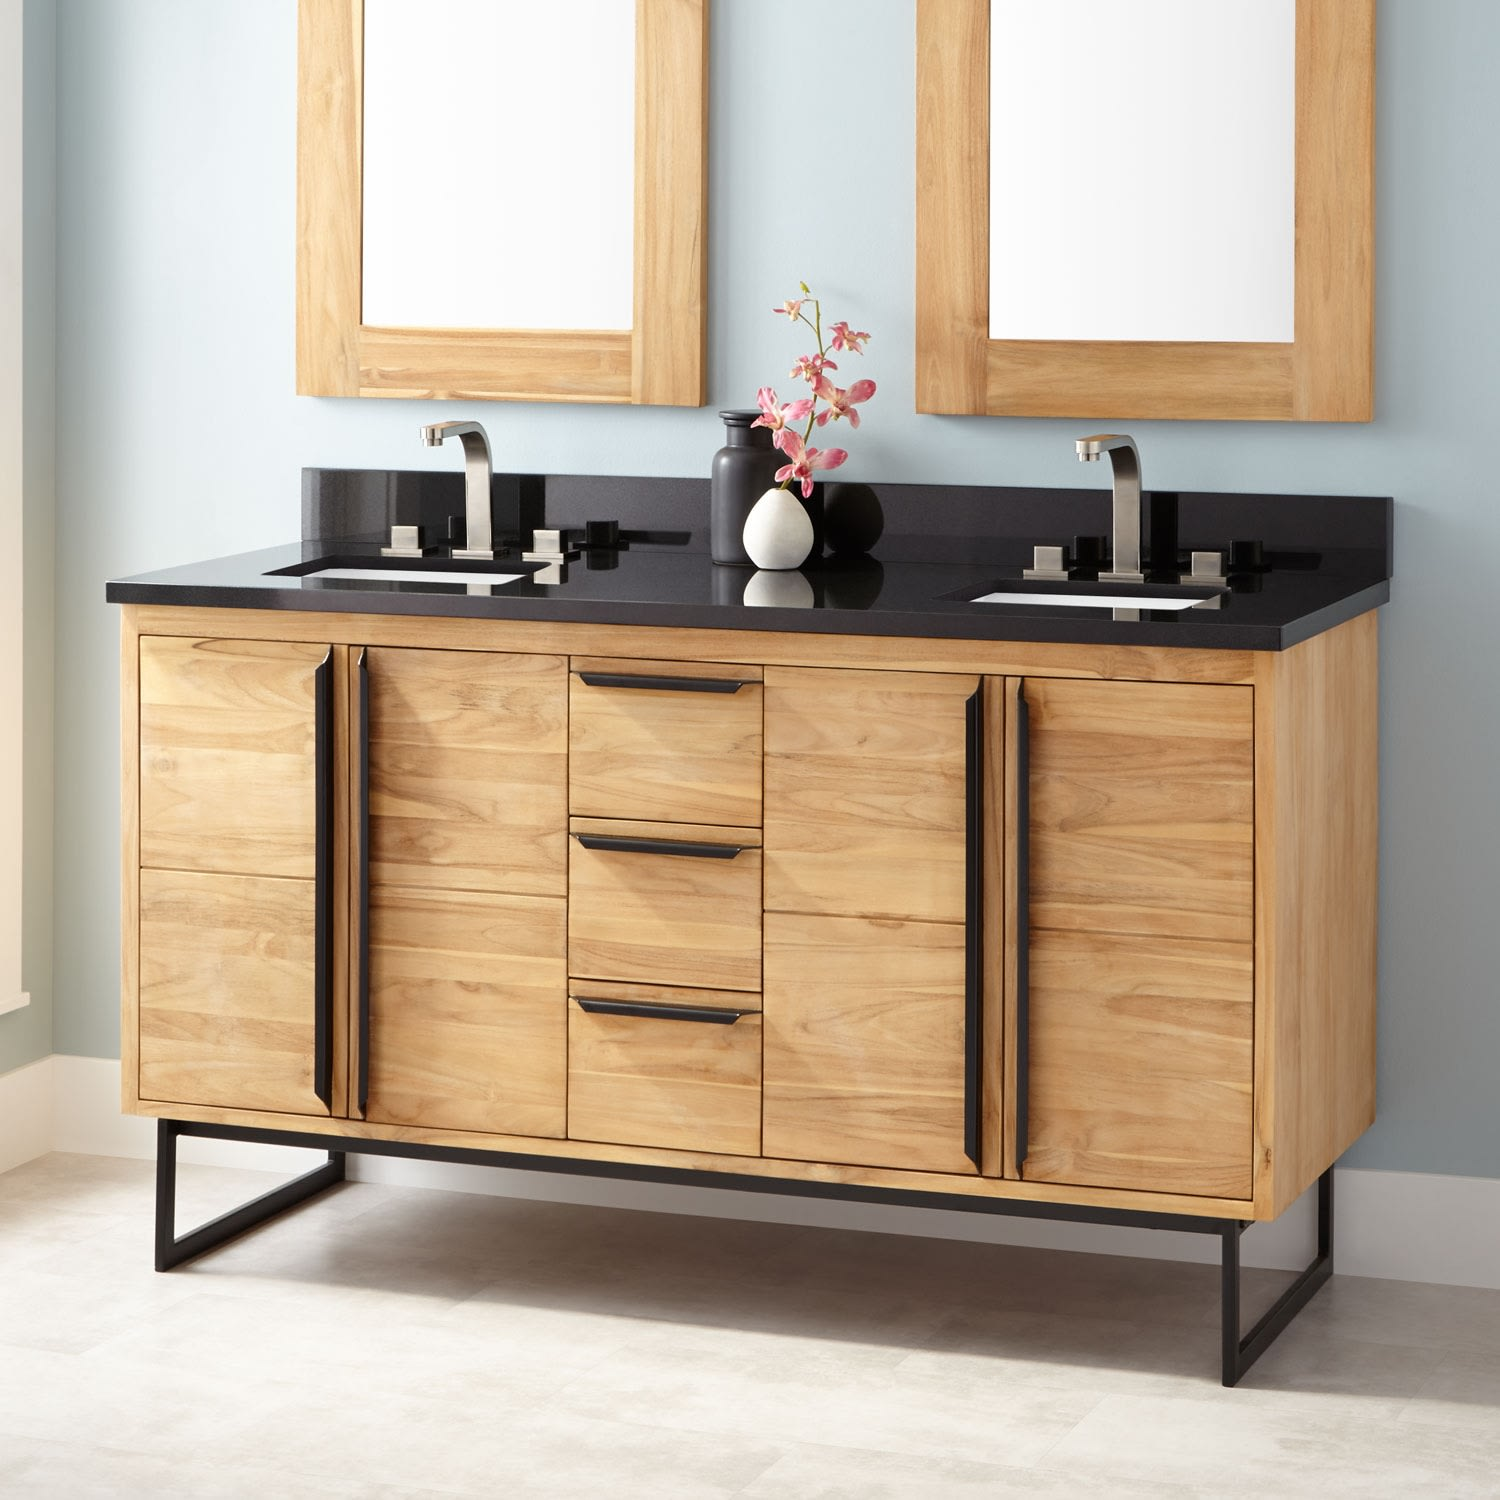 Signature Hardware 422689 Natural Teak Cael 60 Teak Wood Double Vanity Cabinet Choose Your Vanity Top And Sink Configuration Faucet Com